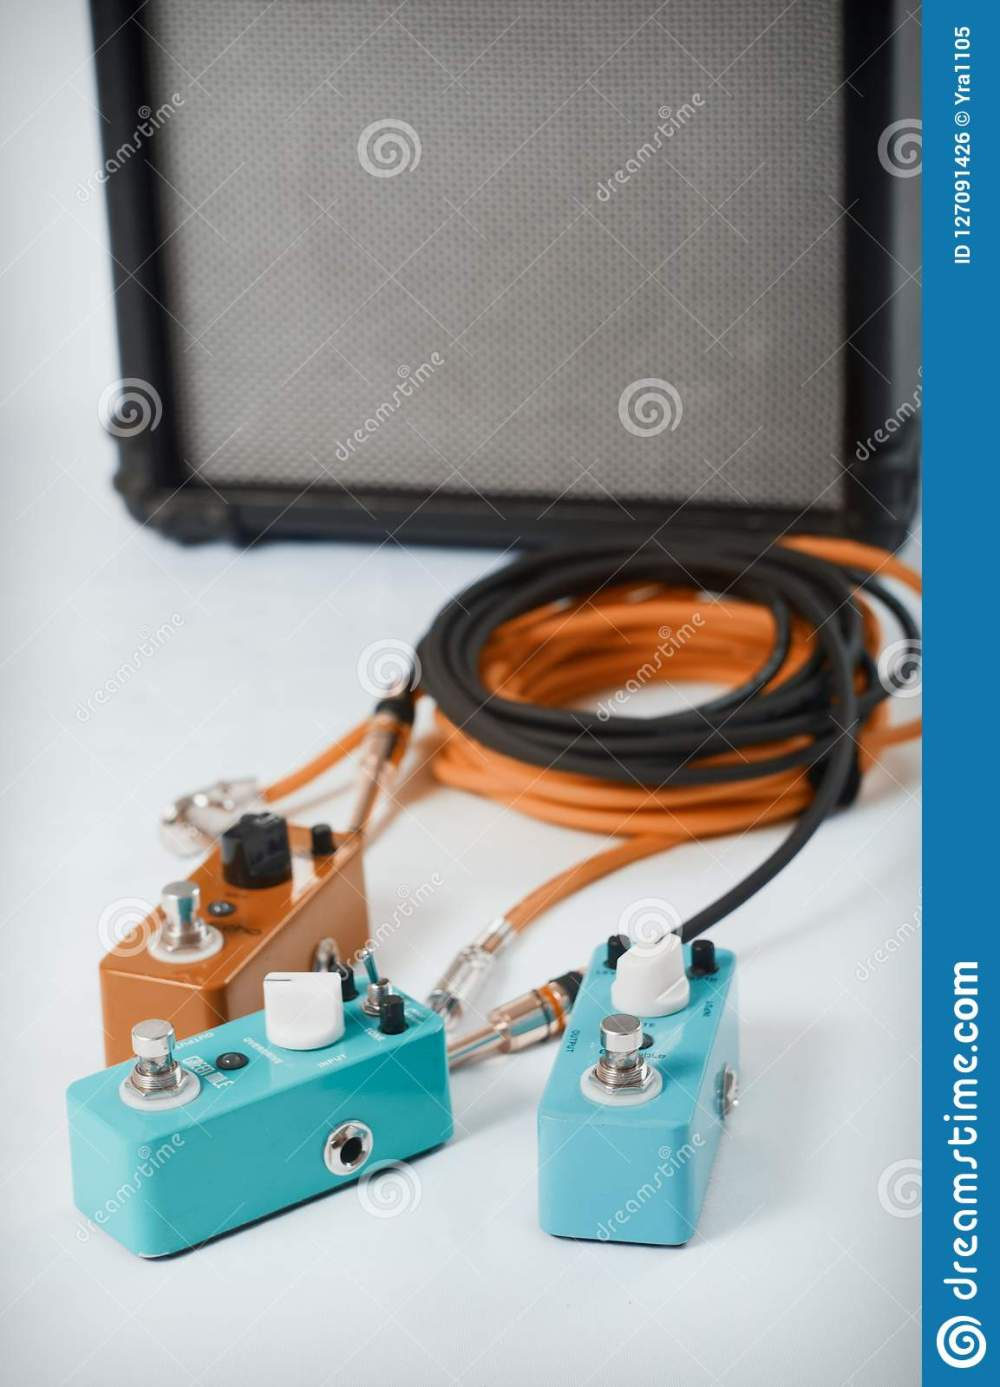 medium resolution of electric guitar stomp effectors and cables in studio focus is on forehand switch box